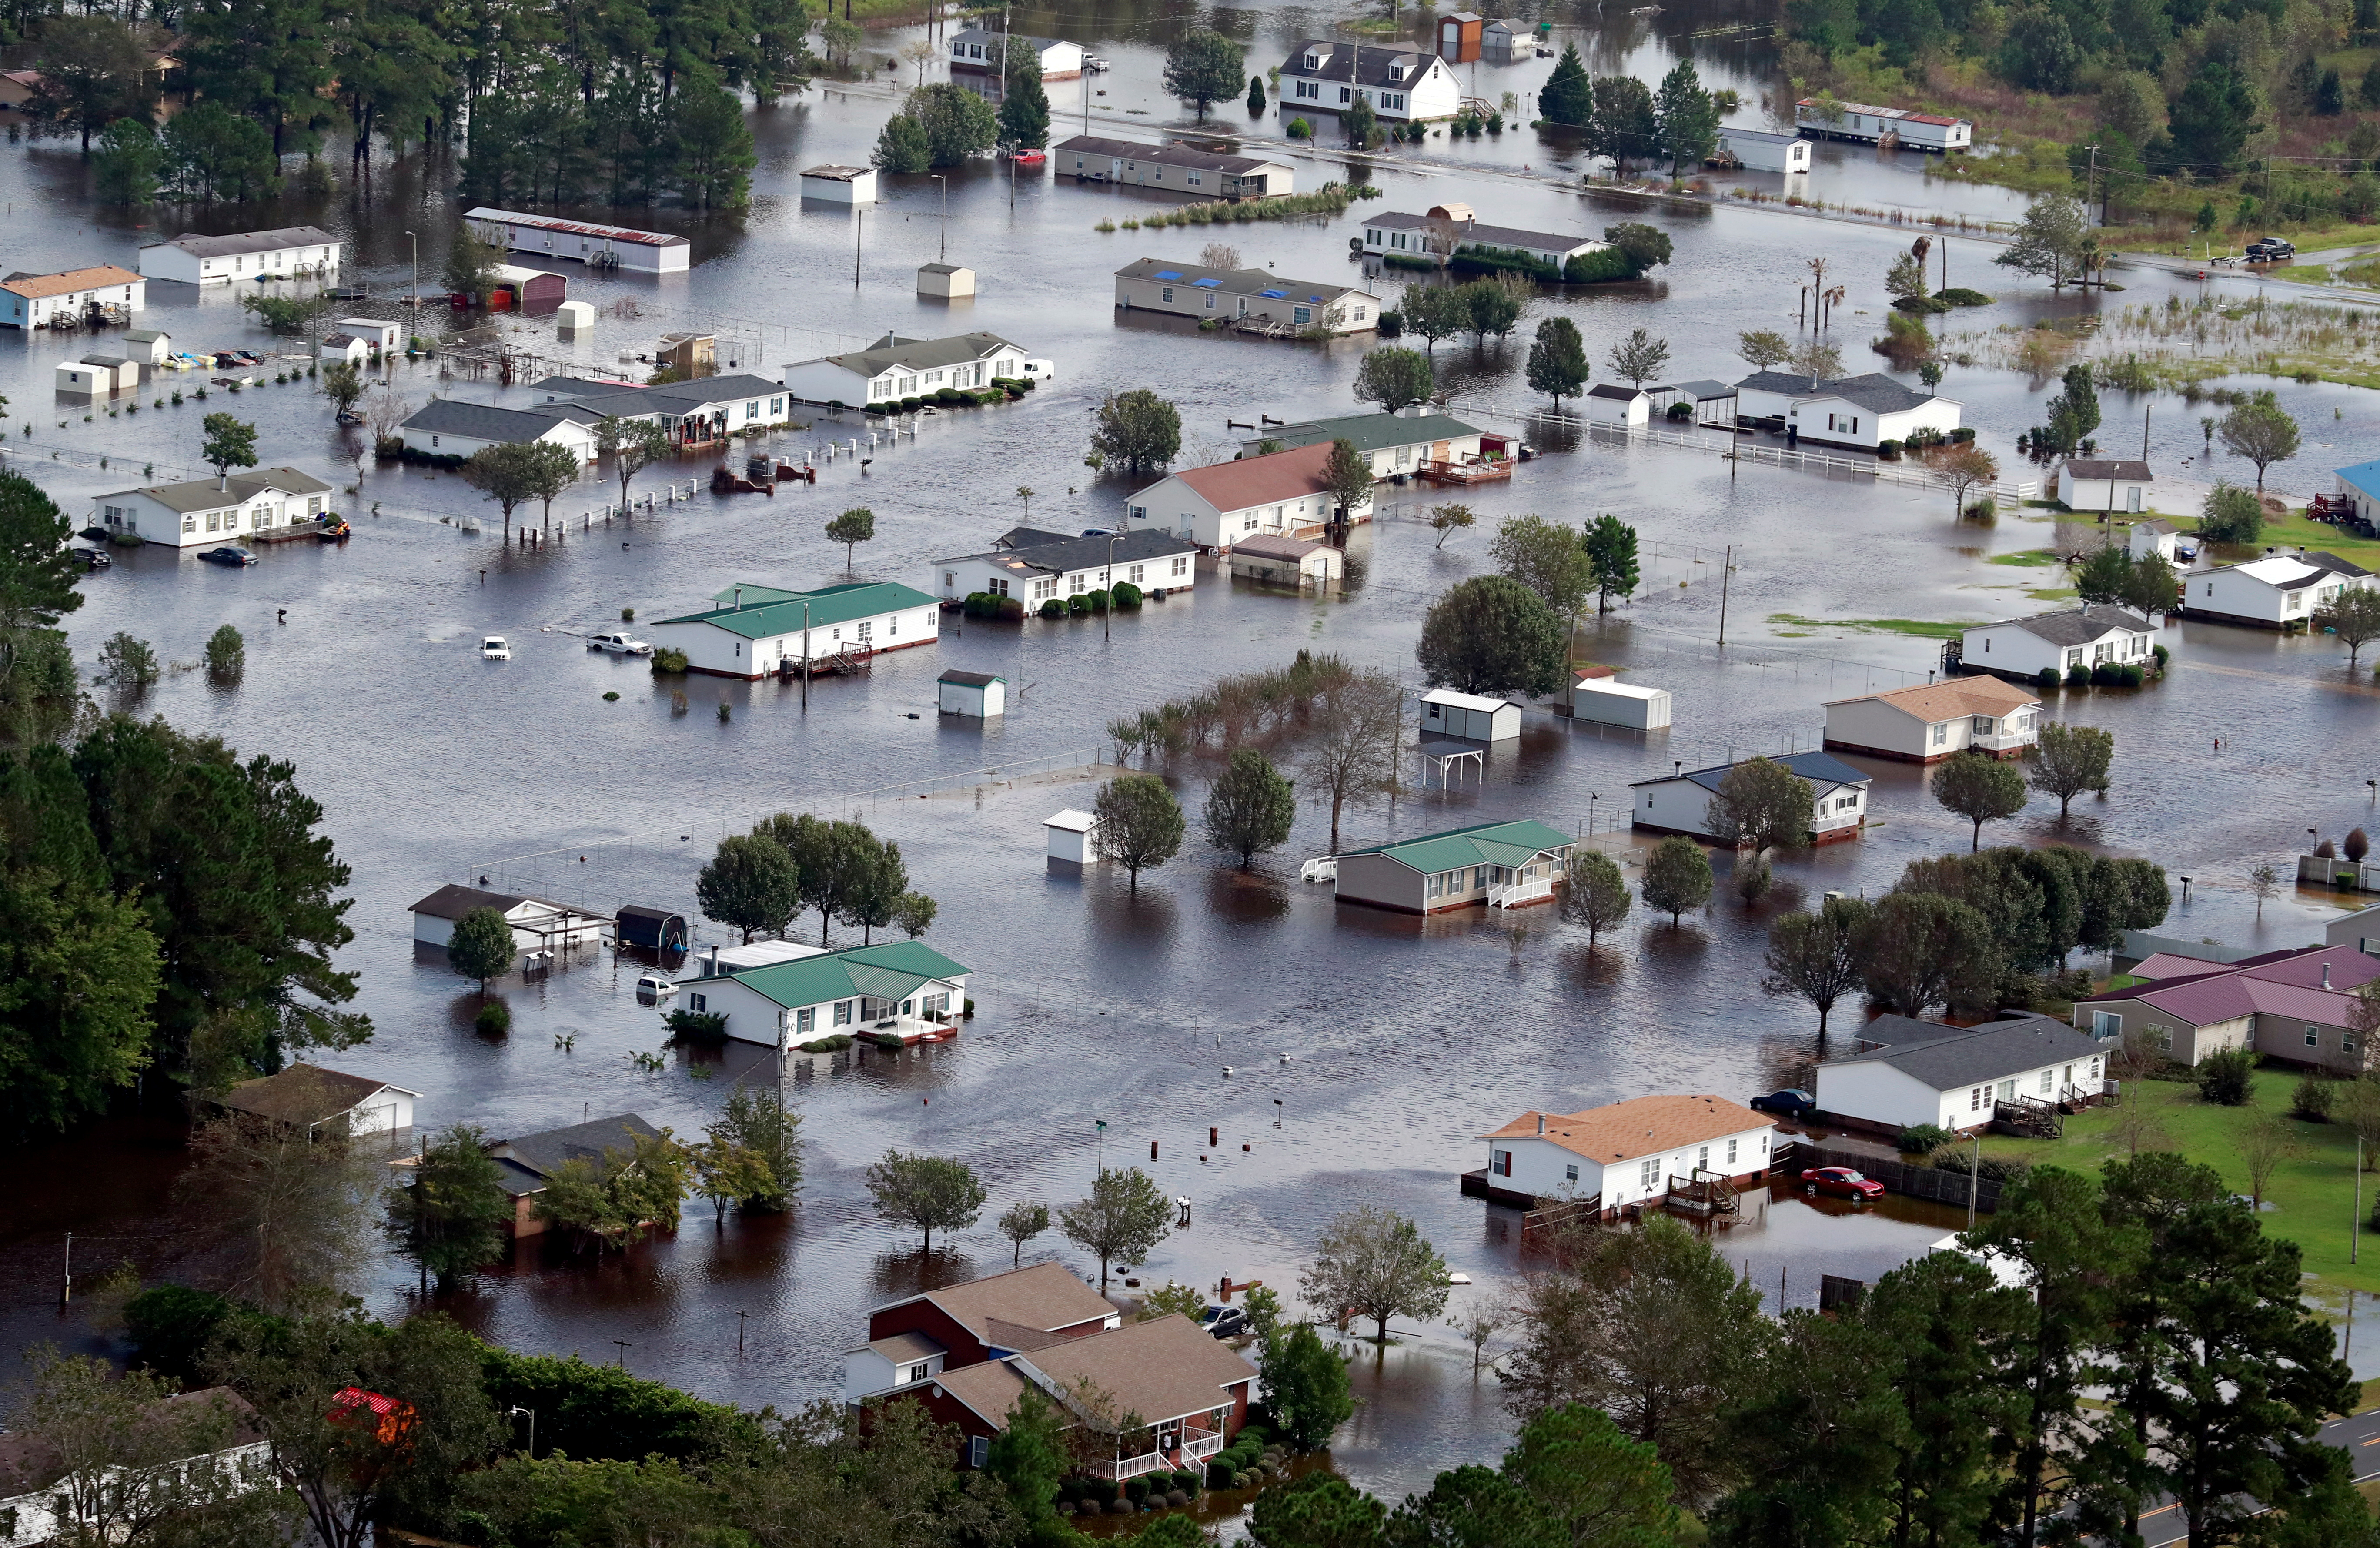 Houses sit in floodwater caused by Hurricane Florence, in this aerial picture, on the outskirts of Lumberton, North Carolina, U.S. September 17, 2018. REUTERS/Jason Miczek